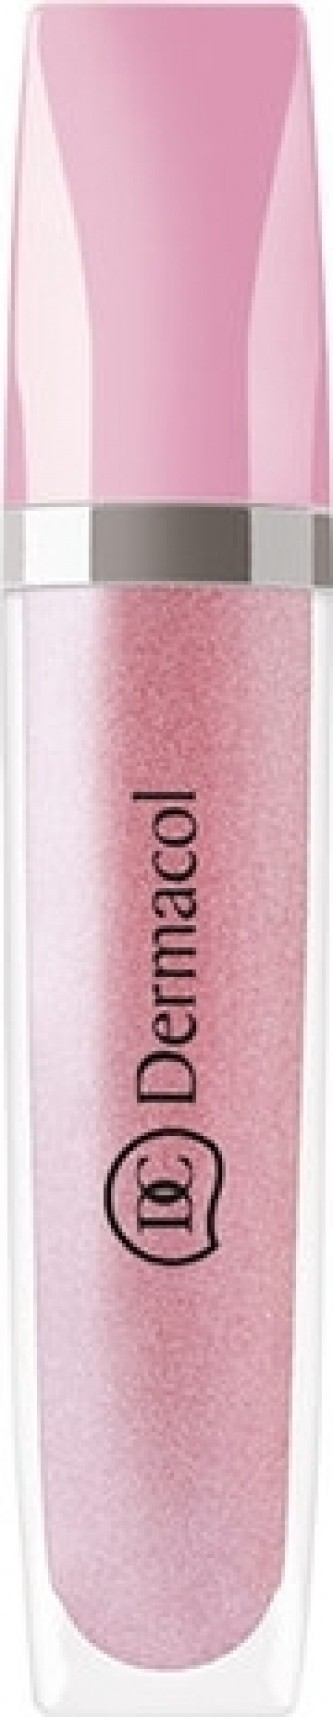 Dermacol Shimmering Lip Gloss 8 ml 3